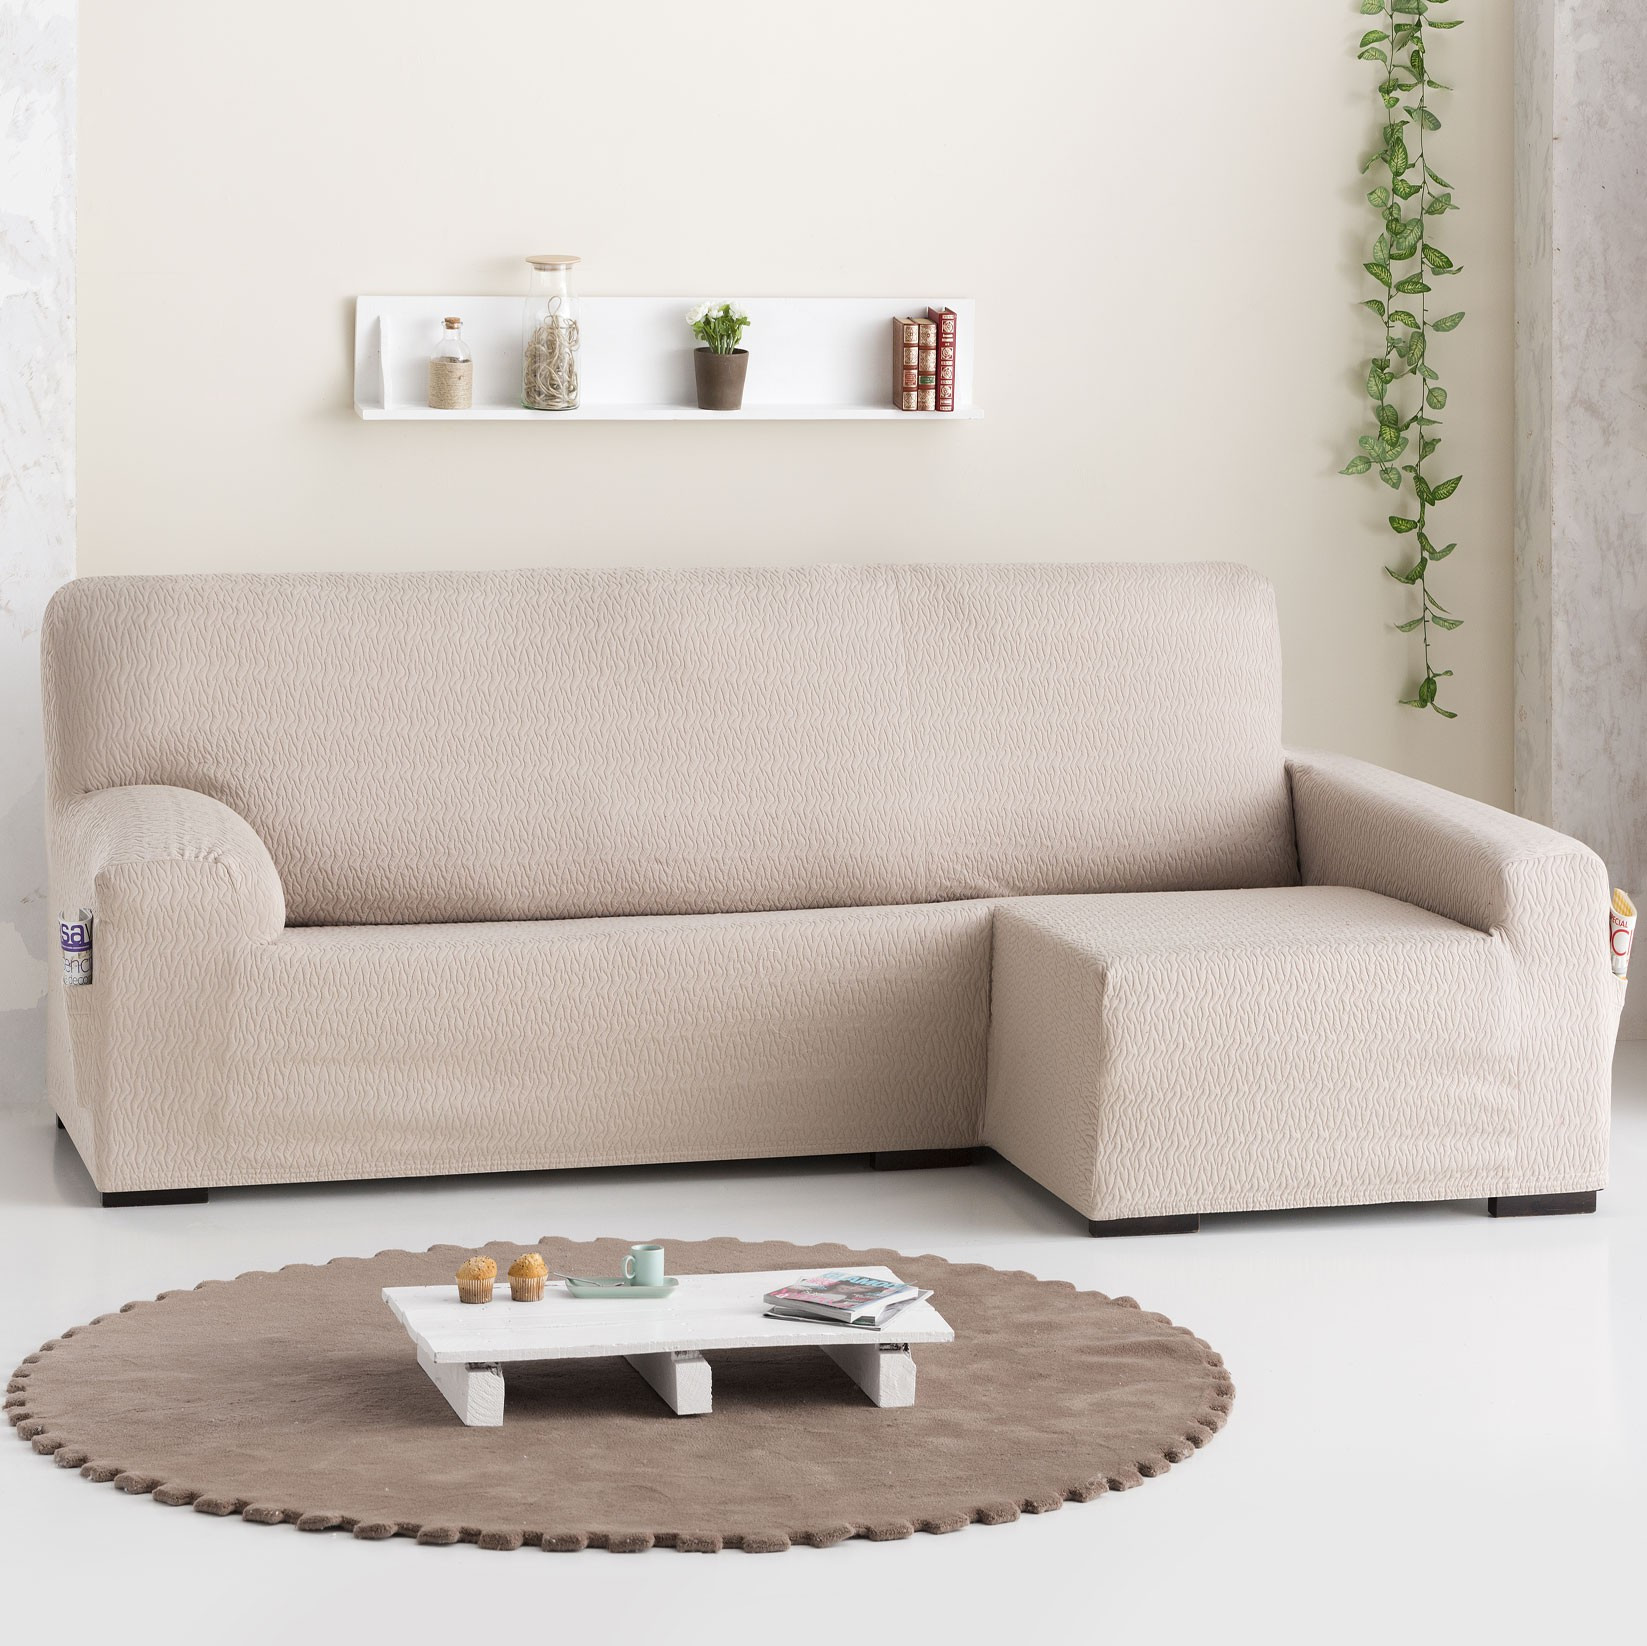 Fundas De sofa Chaise Longue Nuevo Funda sofá Extra Chaise Longue Bielástica Tendre Of 42  Brillante Fundas De sofa Chaise Longue